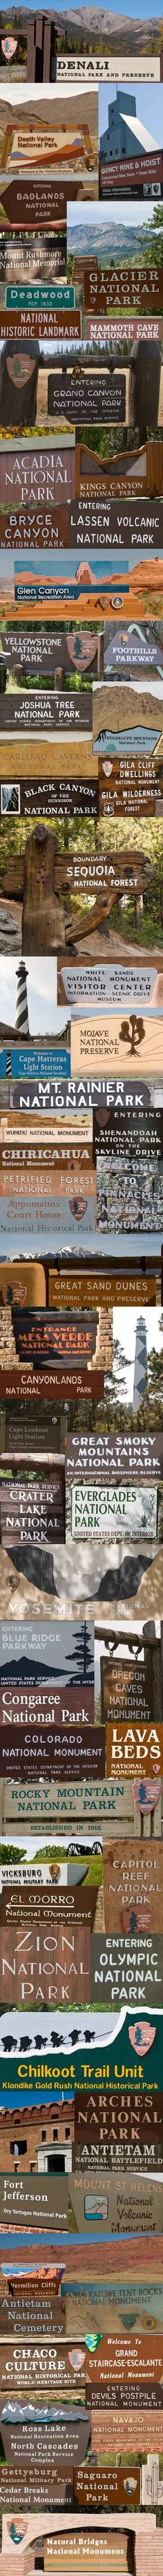 US National Parks signs